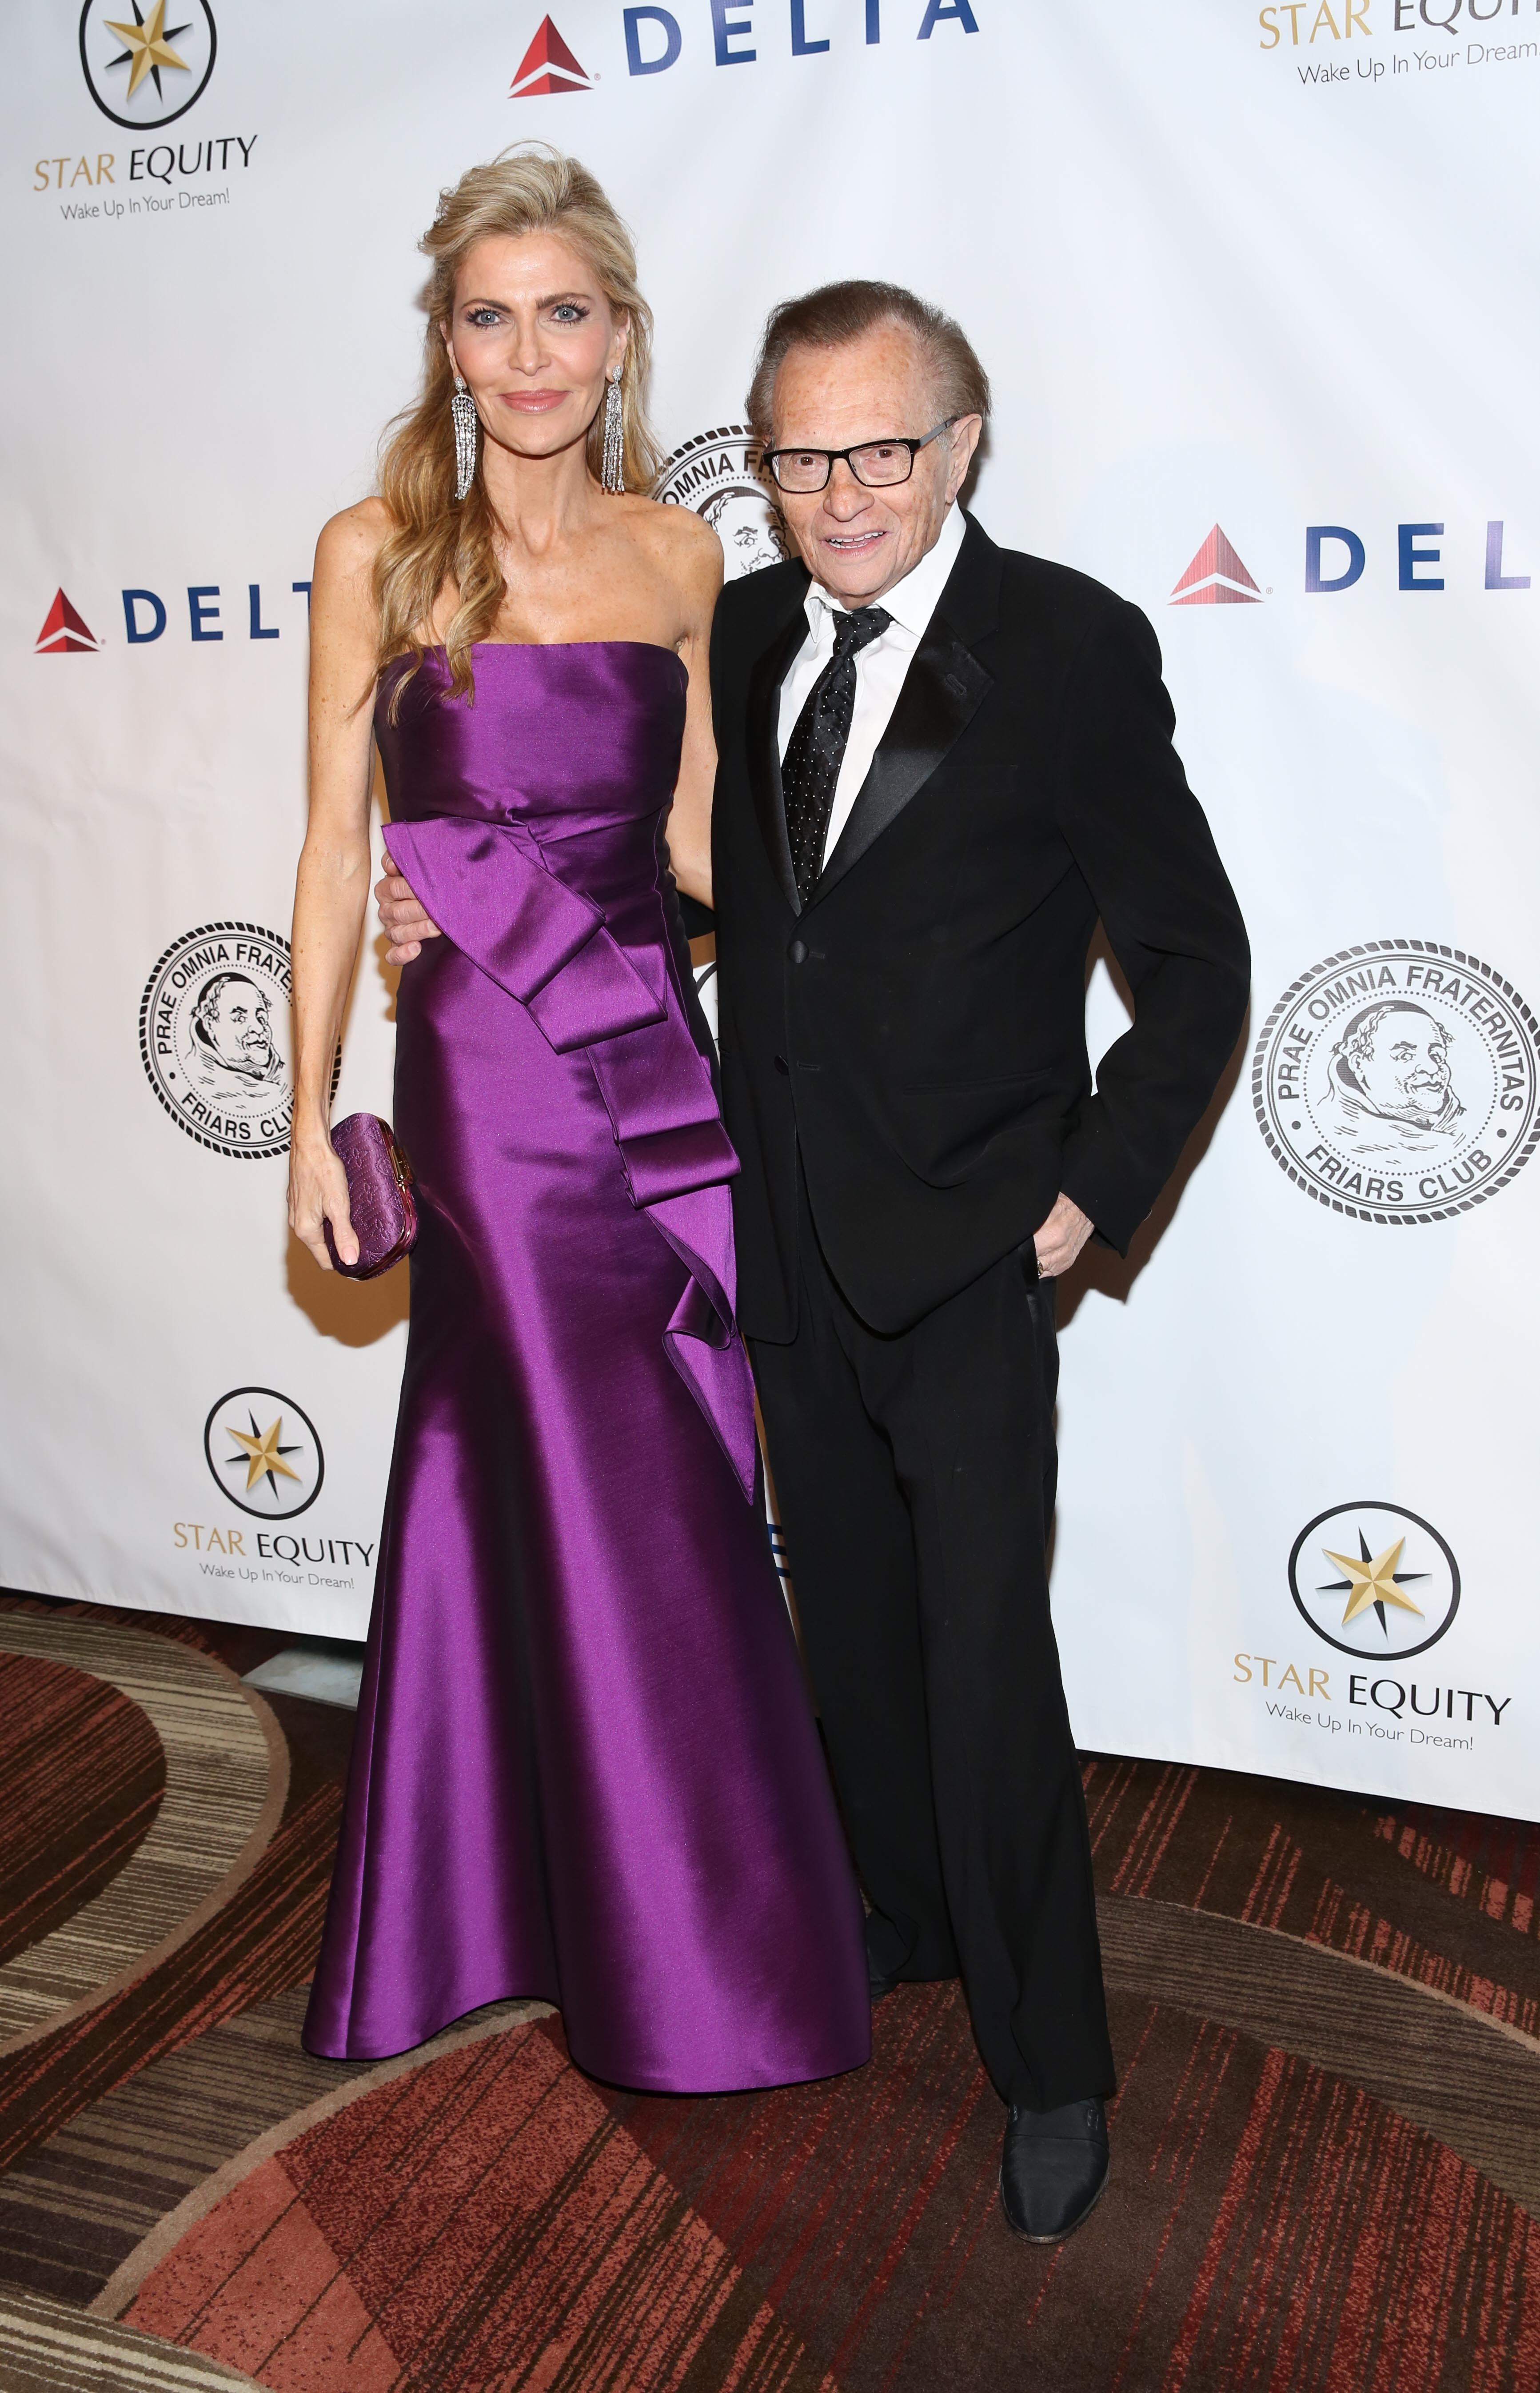 Did Larry King's wife send fake tweets to hide marriage problems?